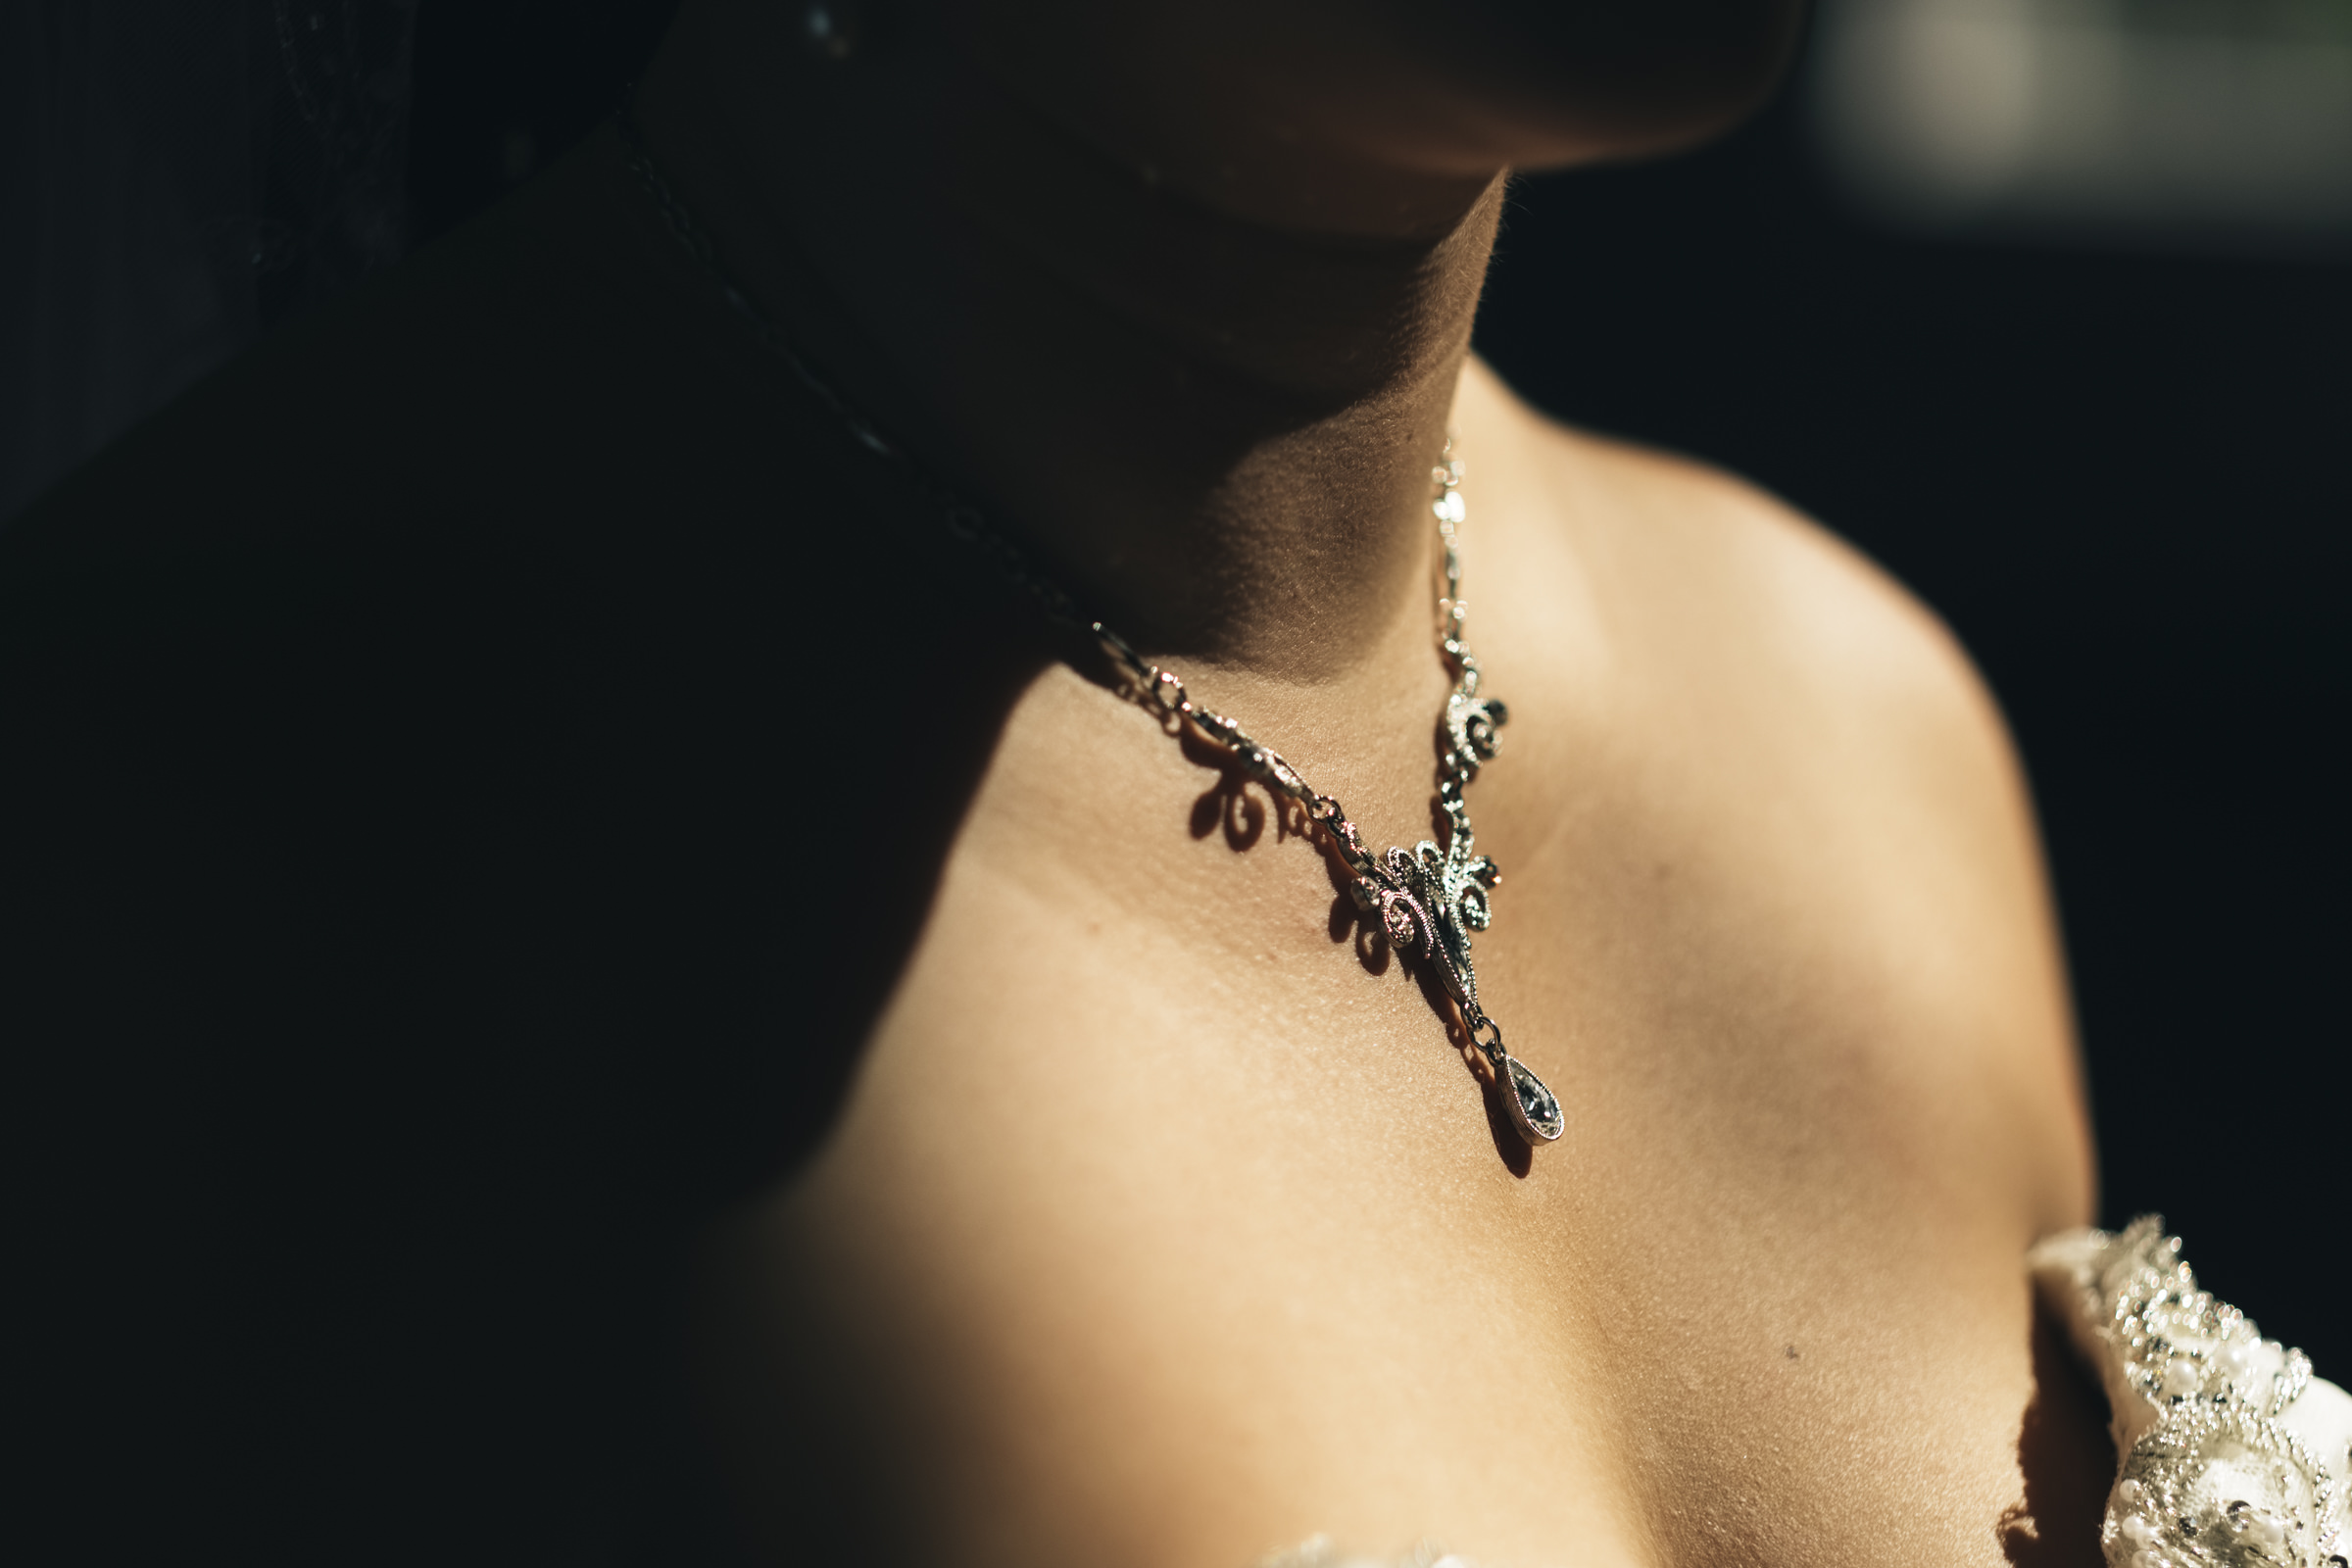 Detail photo of the bride's necklace as she stands in the warm sunlight